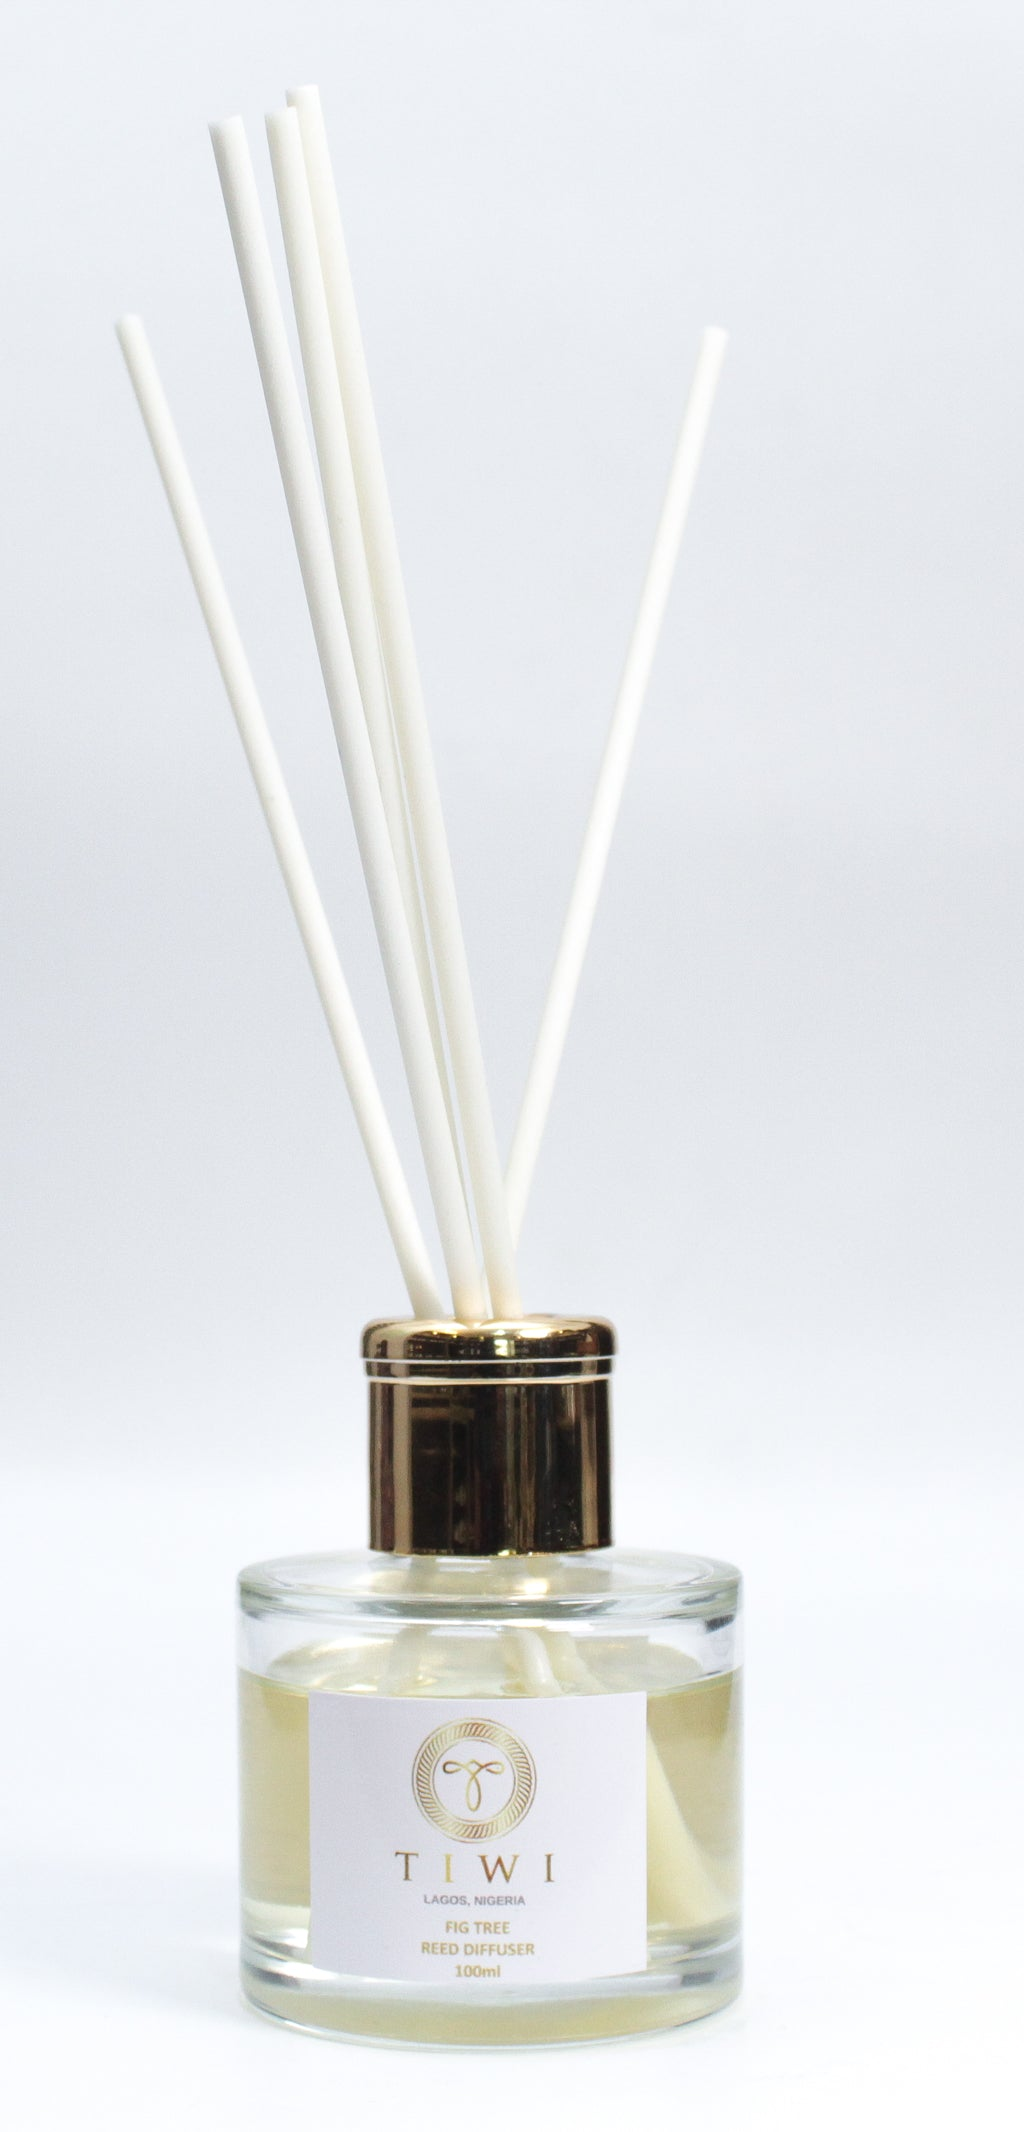 TIWI Fig Tree Reed Diffuser - TIWI Home Fragrance